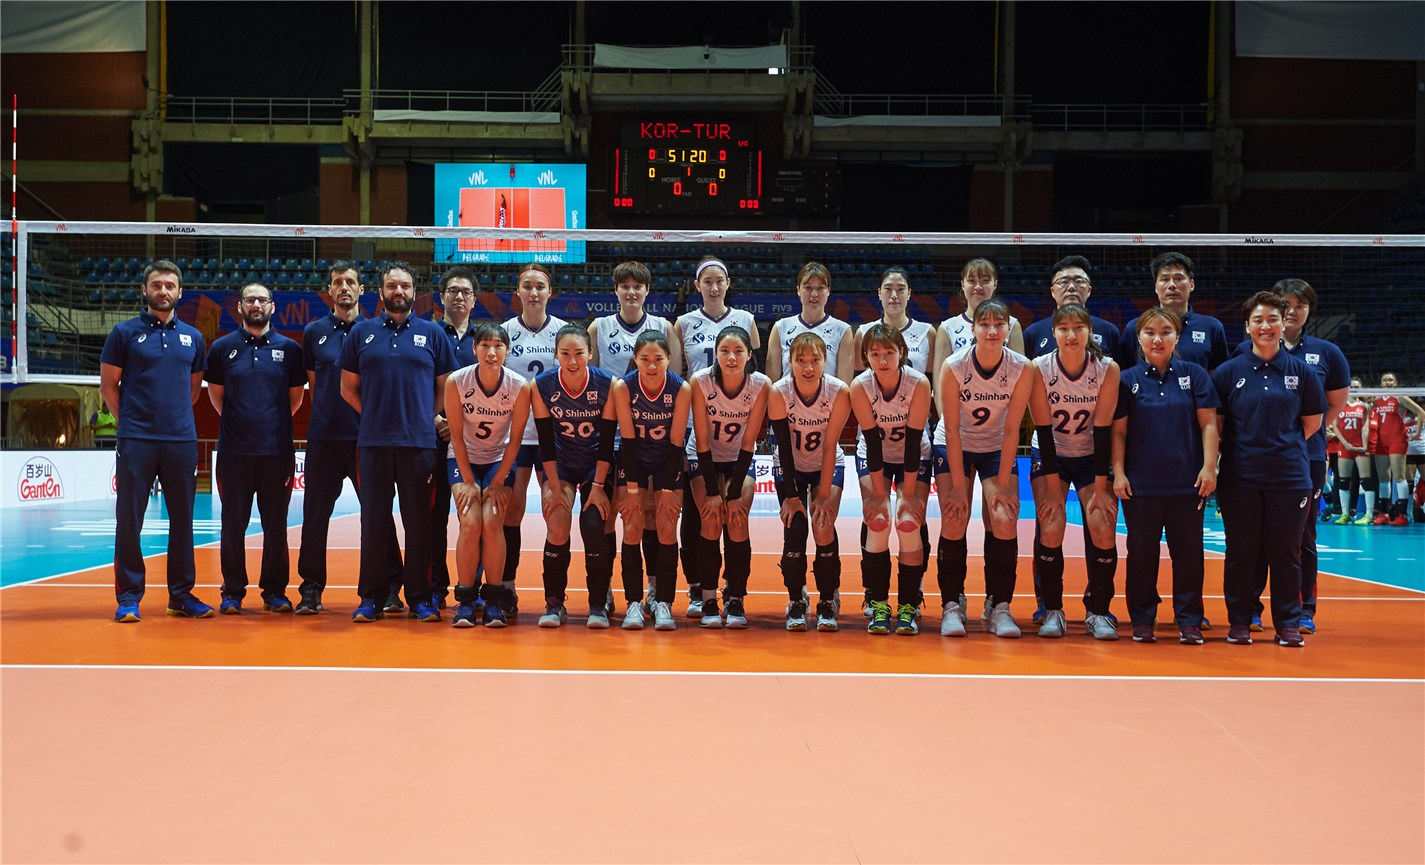 Overview - Korea - FIVB Volleyball Nations League 2019